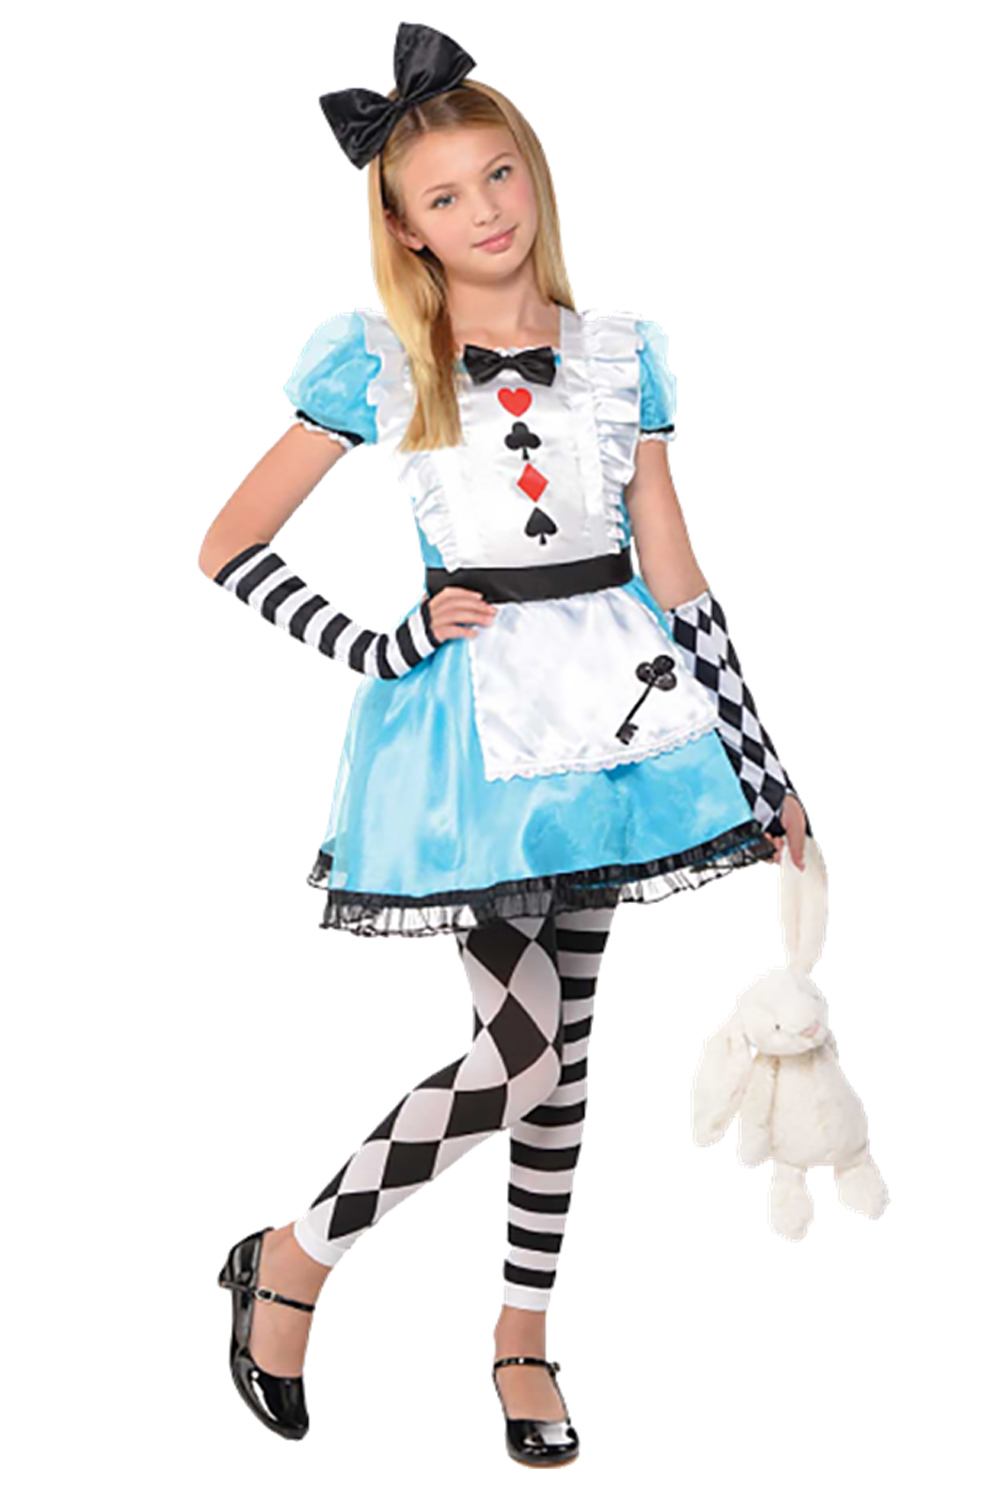 Christys Dress Up Girls Clever Alice In Wonderland Outfit Fancy Dress Costume | EBay